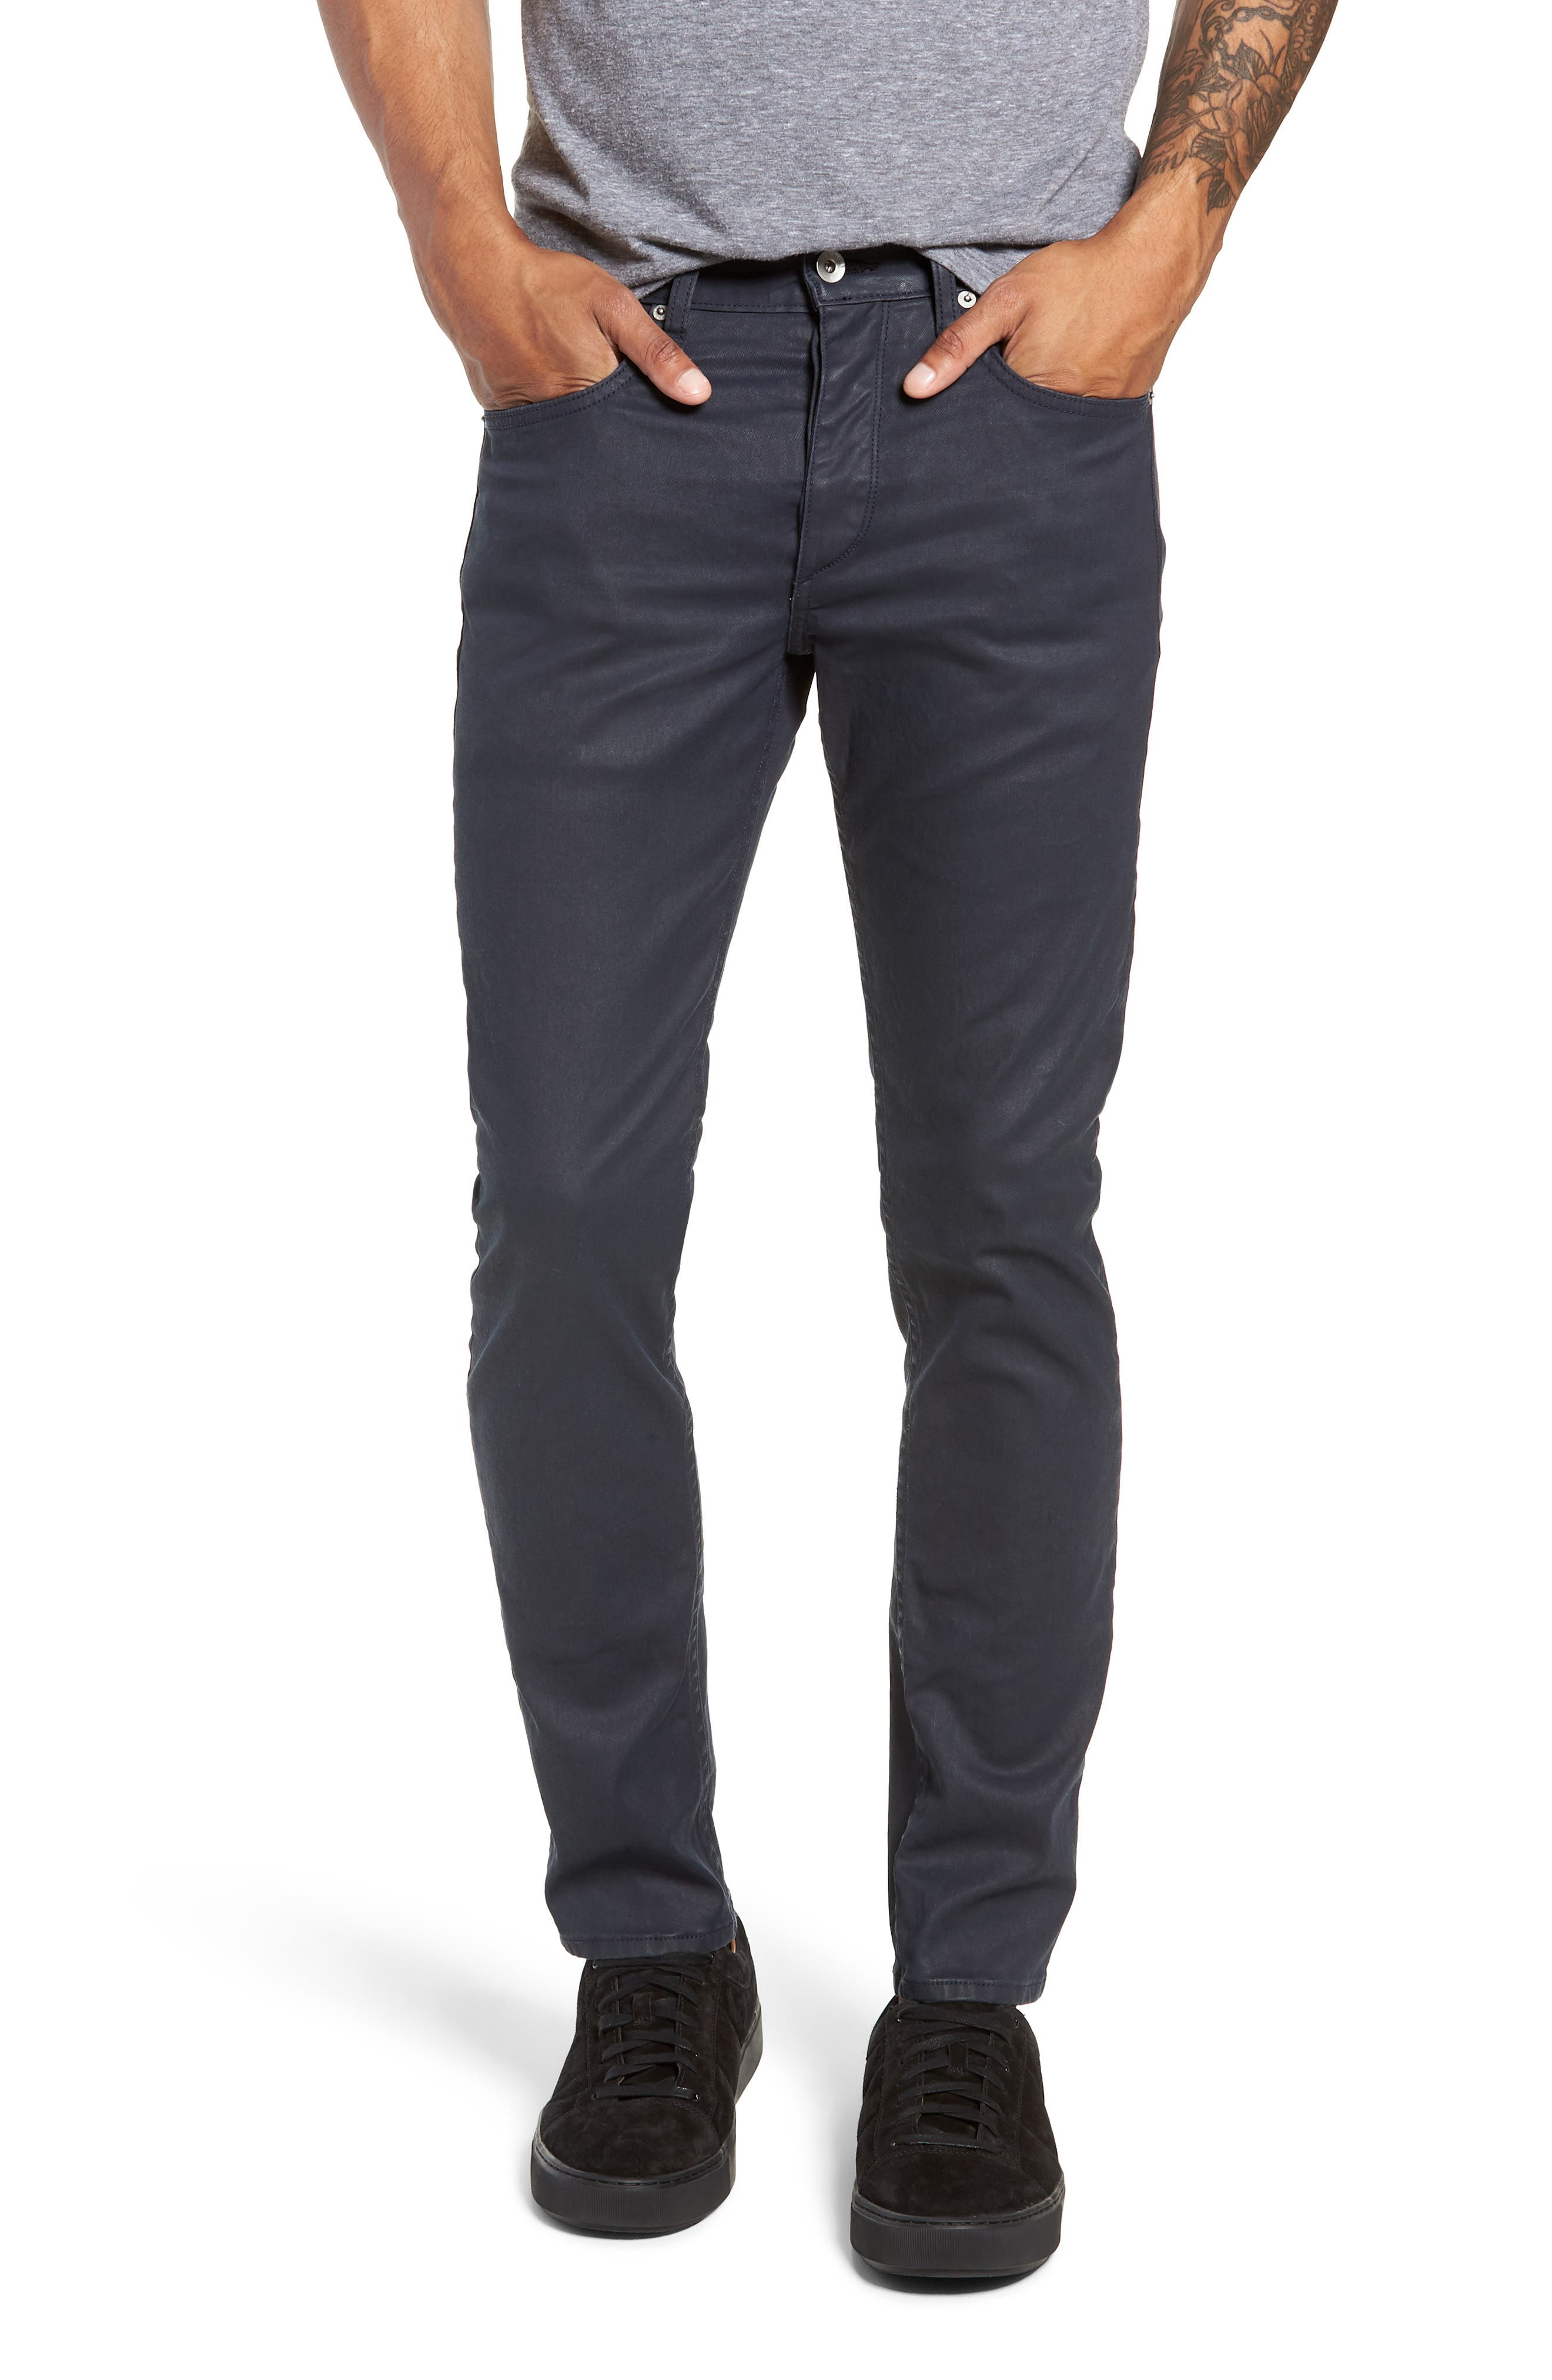 Fit 2 Slim Fit Coated Twill Pants,                         Main,                         color, COATED BLUE